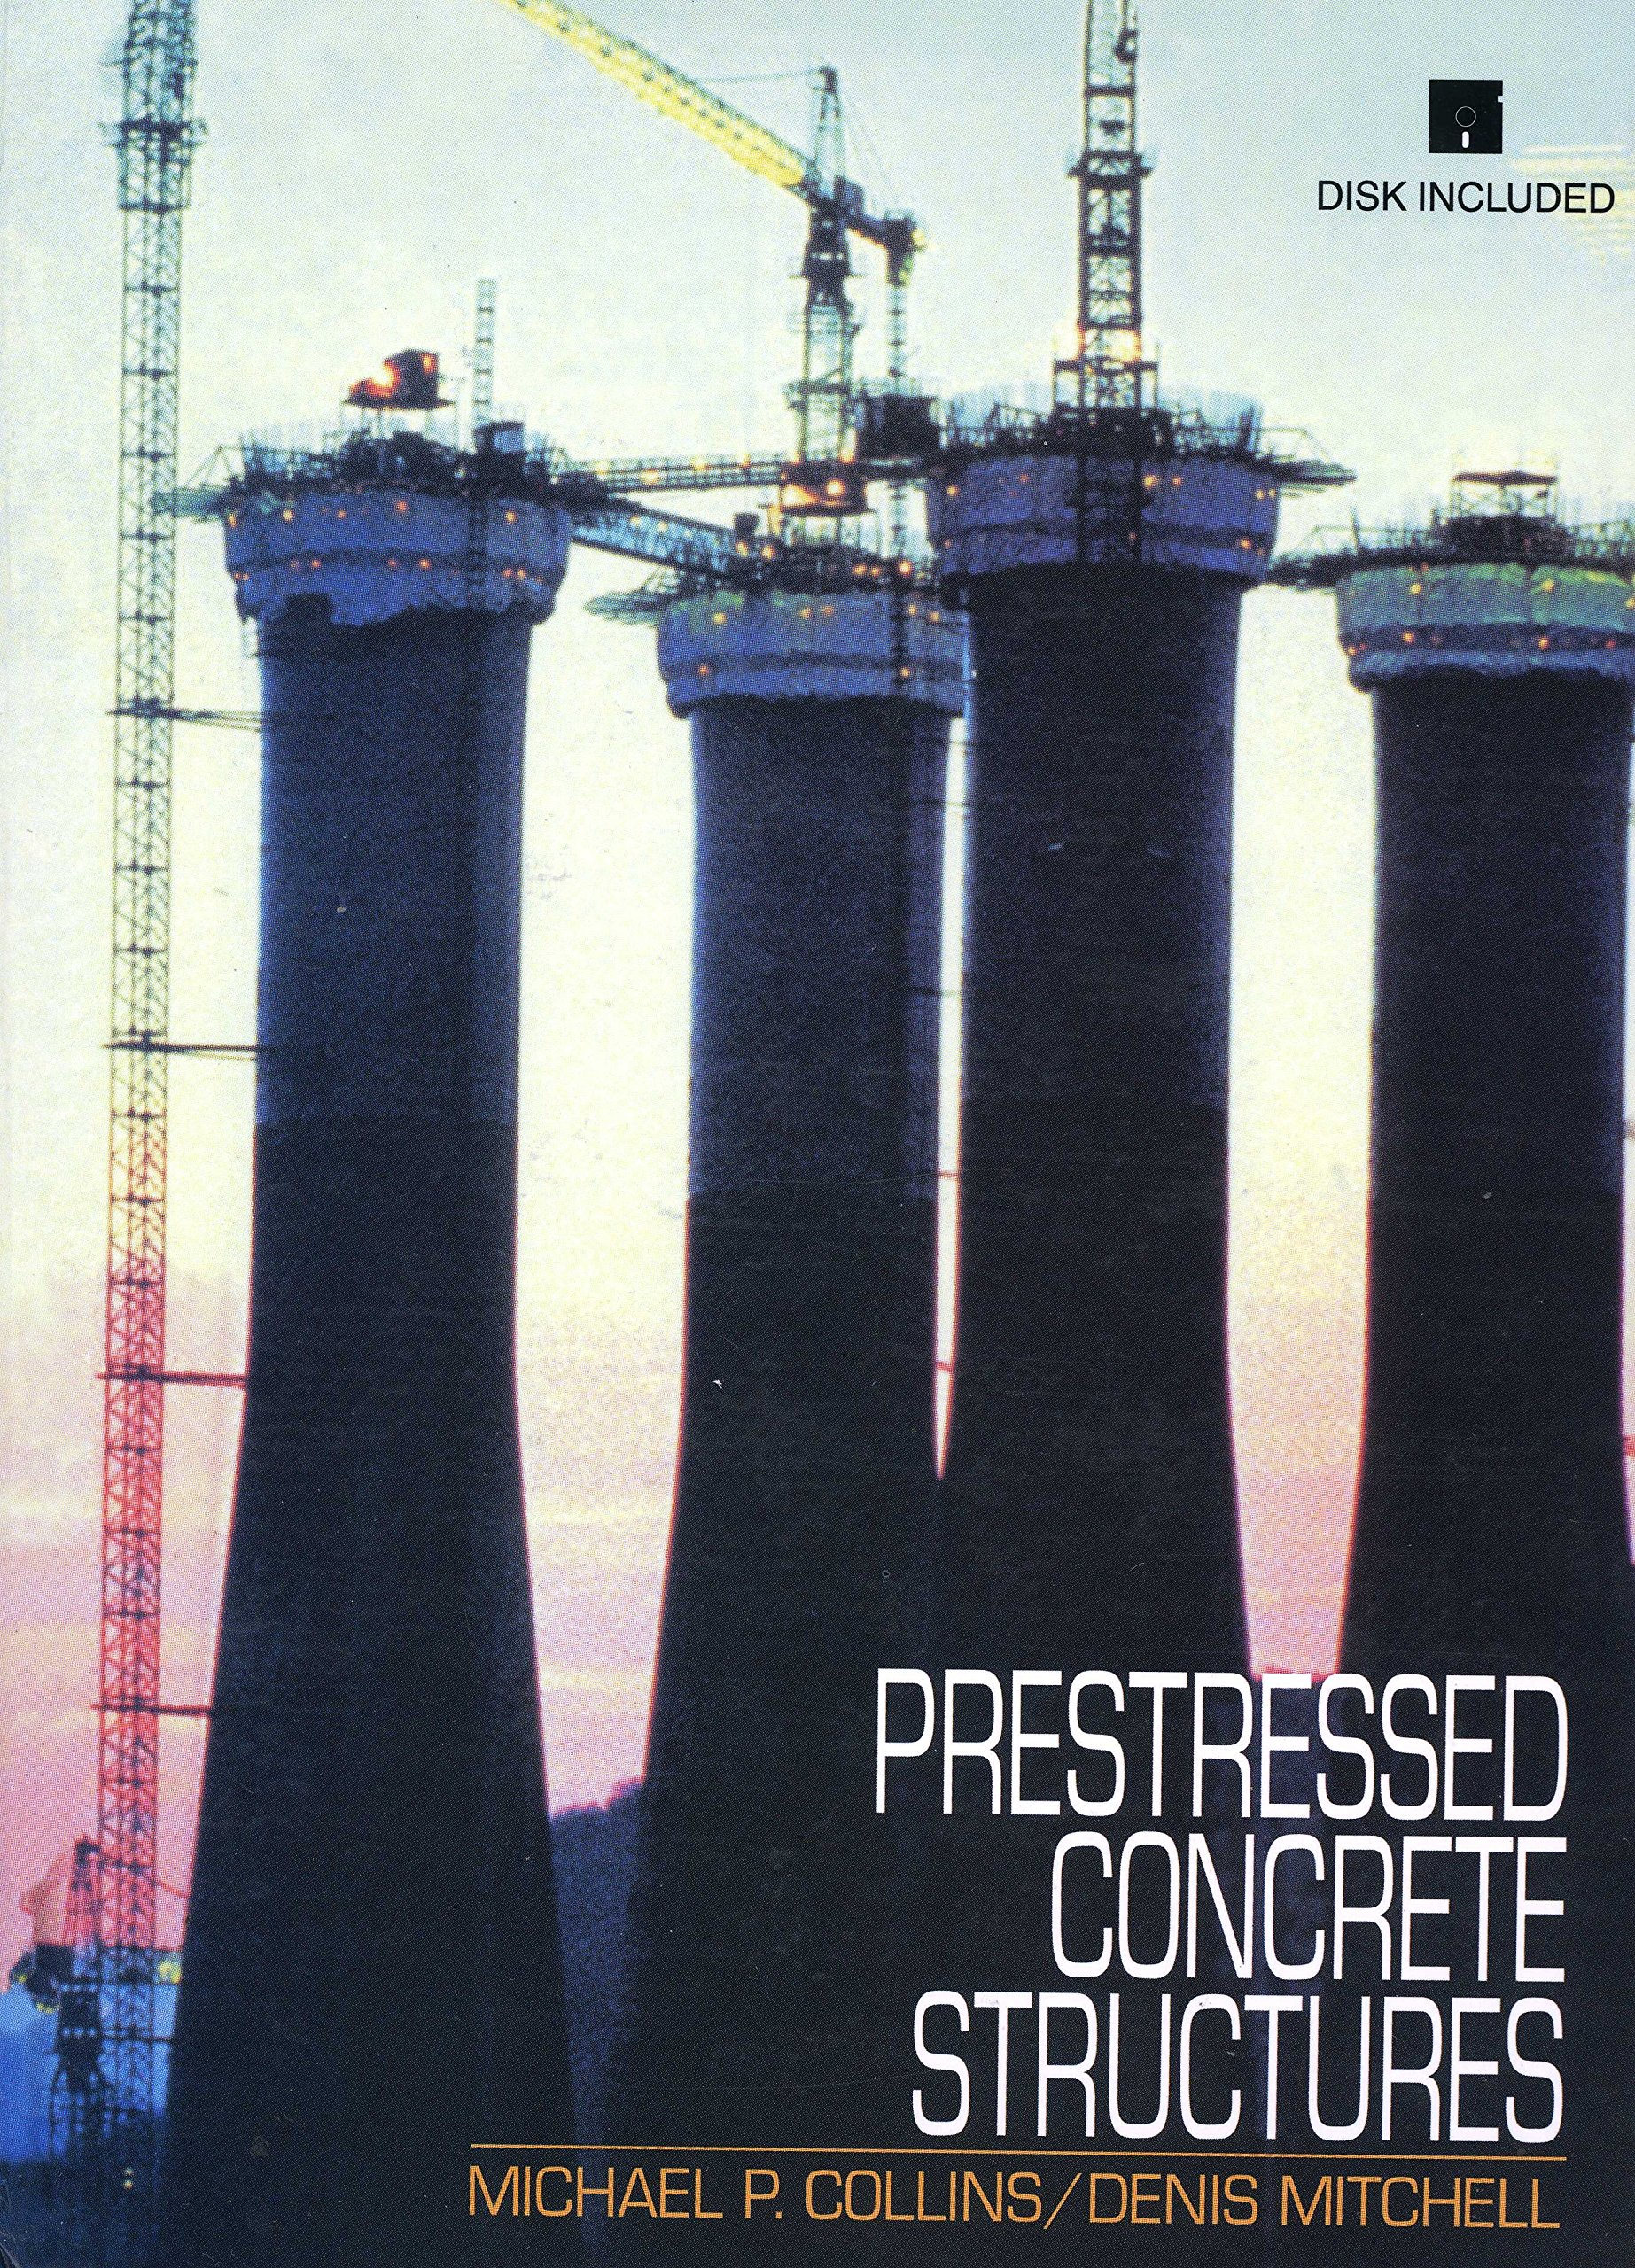 prestressed concrete structures michael p collins denis mitchell 9780968195802 amazoncom books